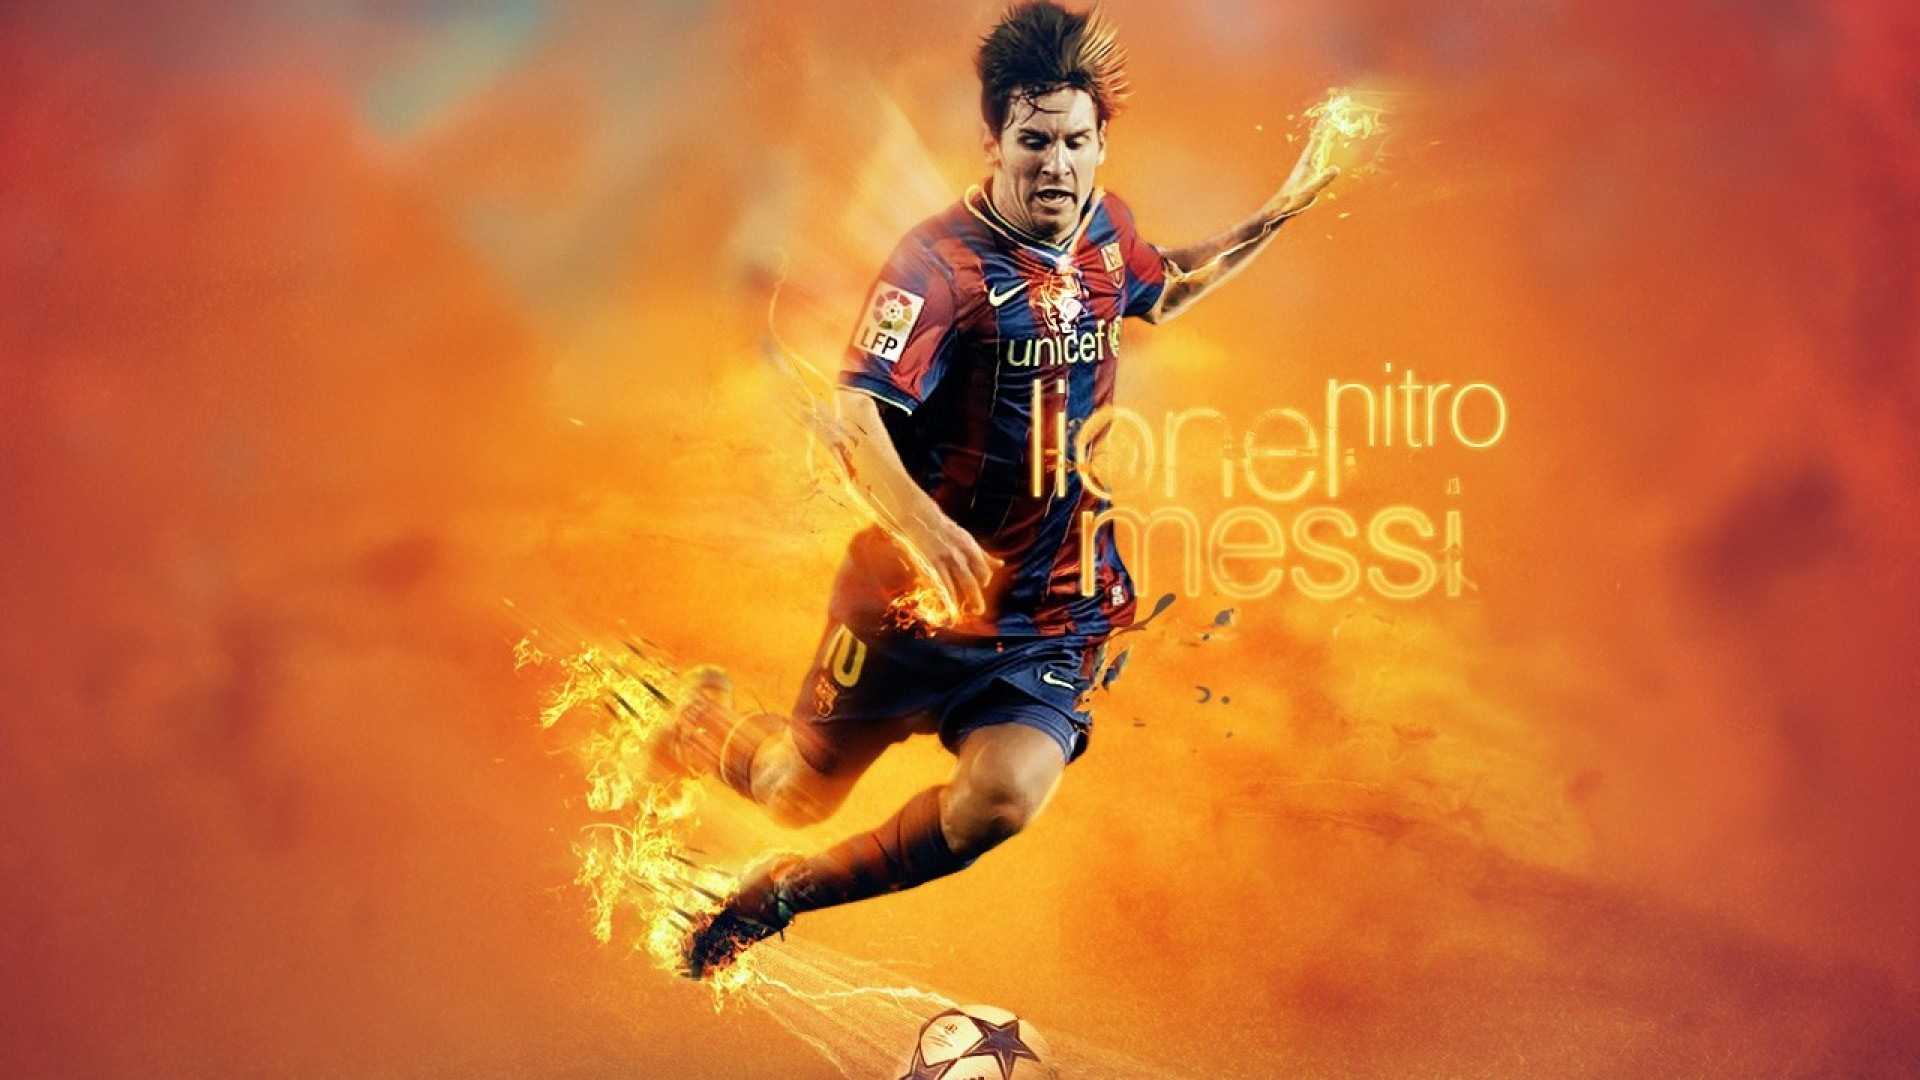 Messi HD Wallpapers p Wallpaper  1920x1080